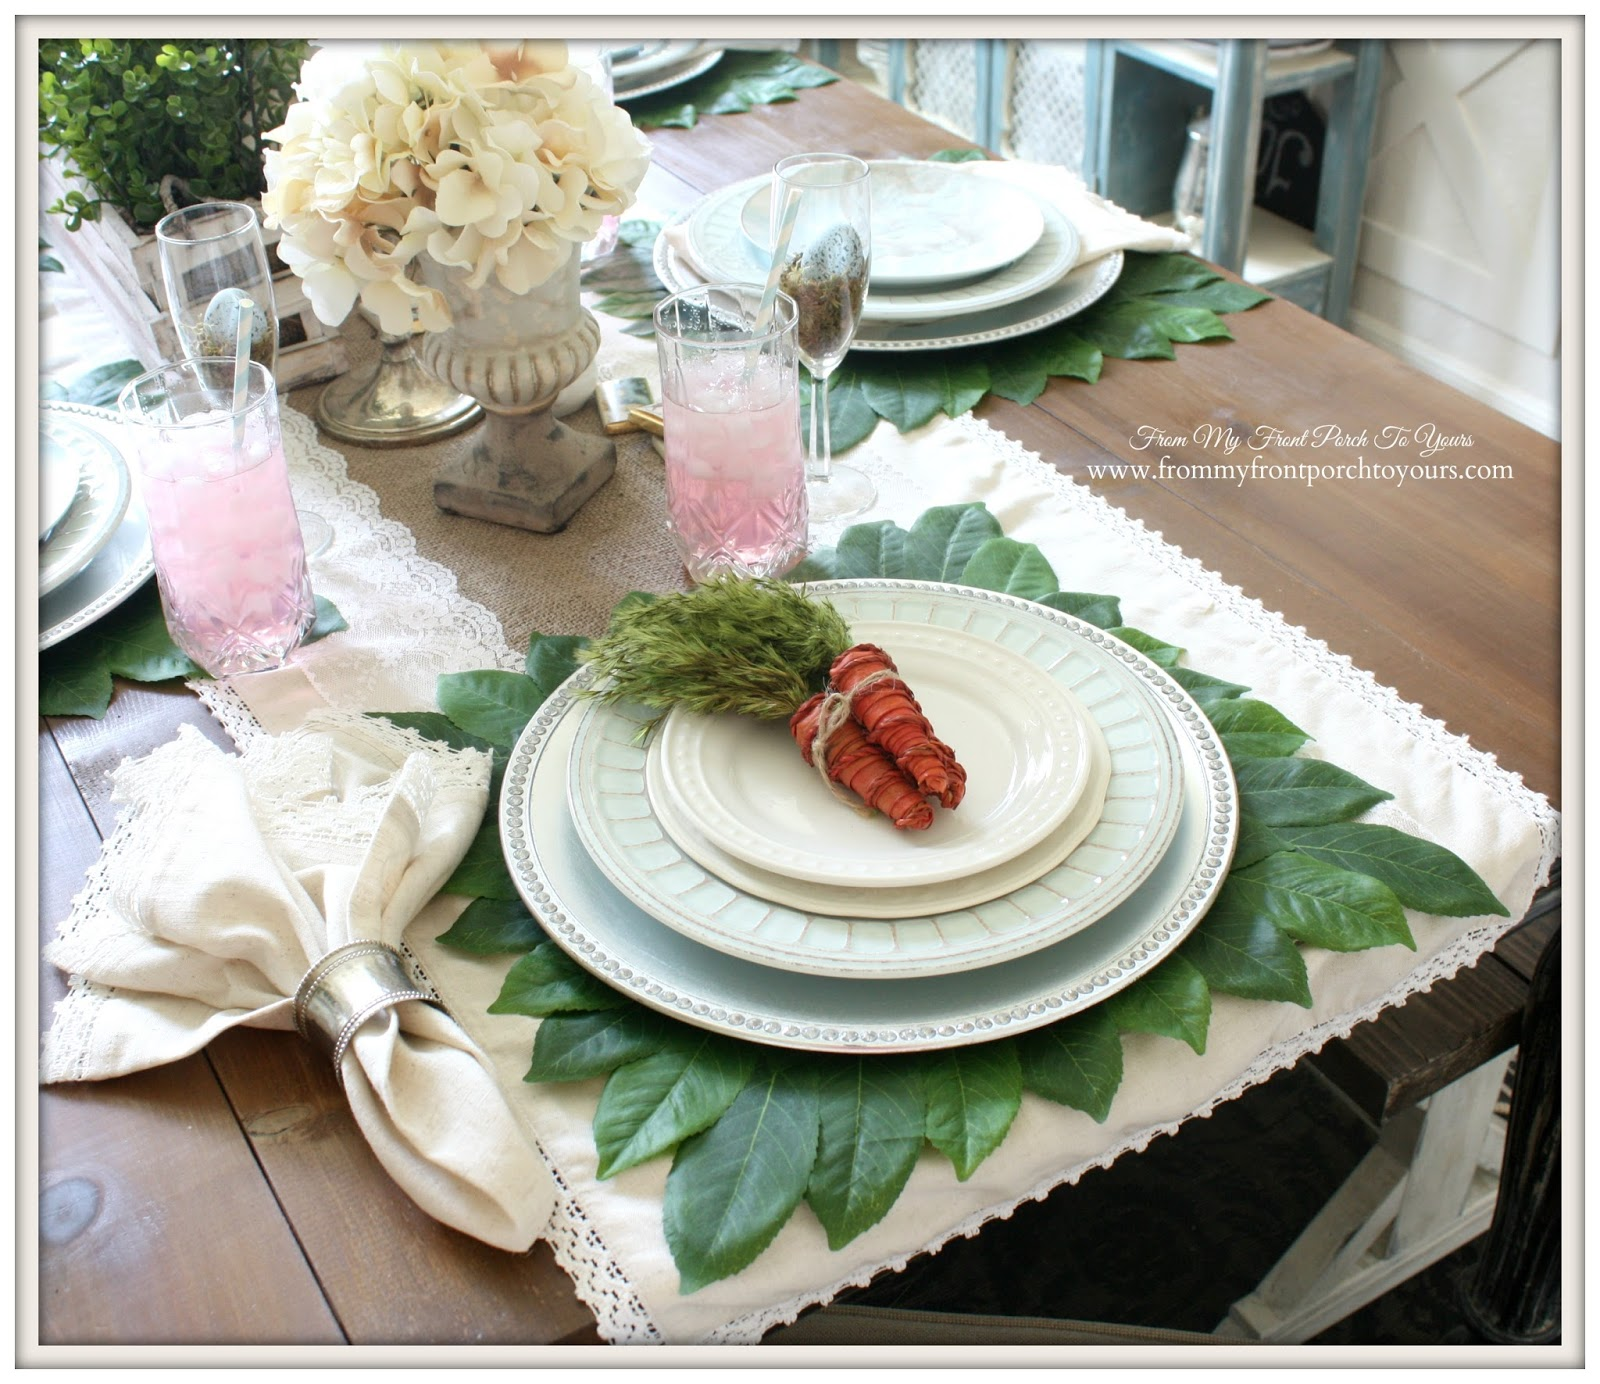 French Farmhouse Easter Dining Room-Place Setting- From My Front Porch To Yours